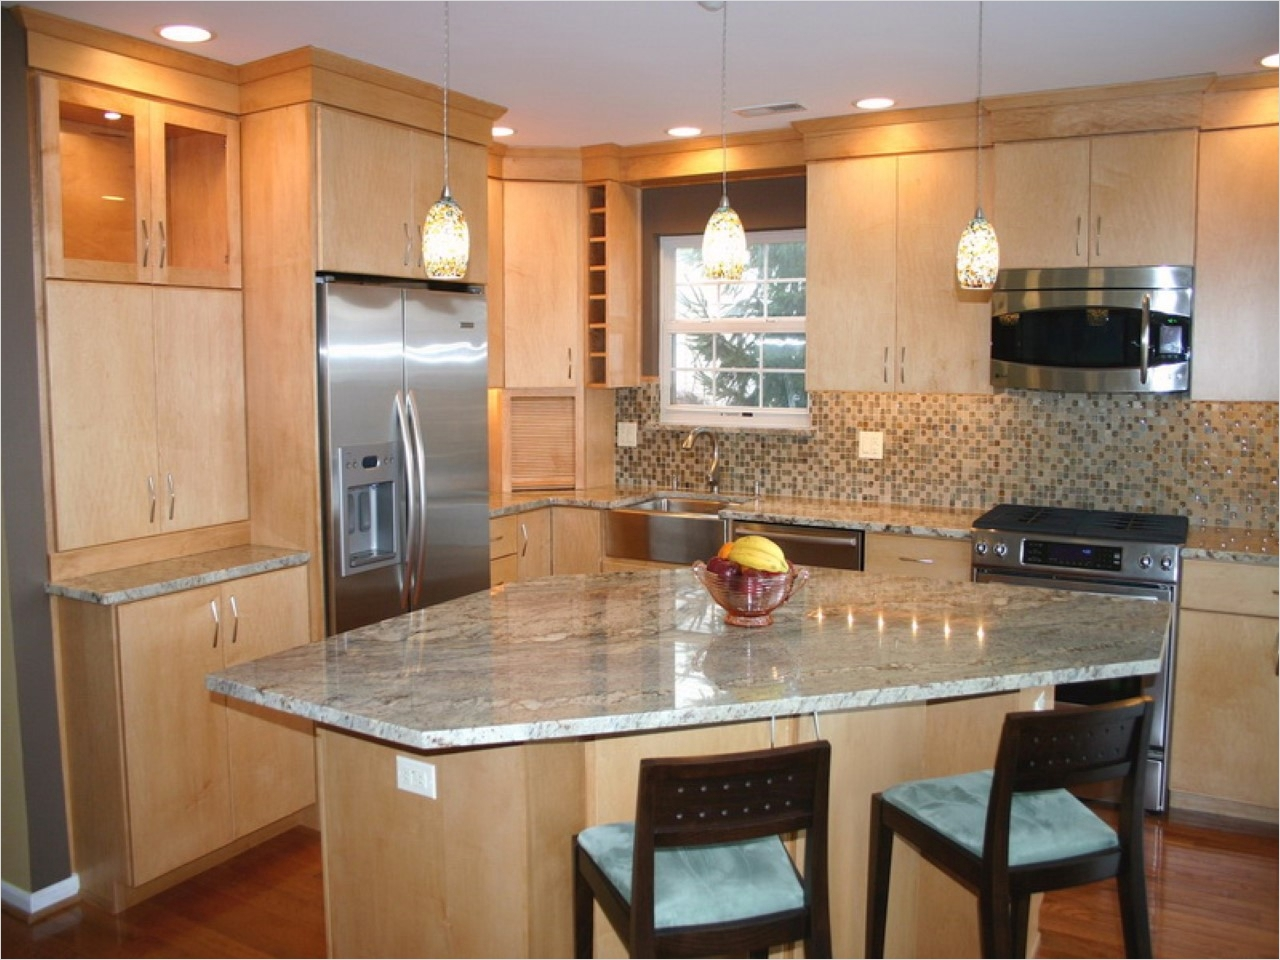 44 Perfect Ideas Small Kitchen Designs with islands 99 Best Small Kitchen Design with island for Perfect Arrangement 8